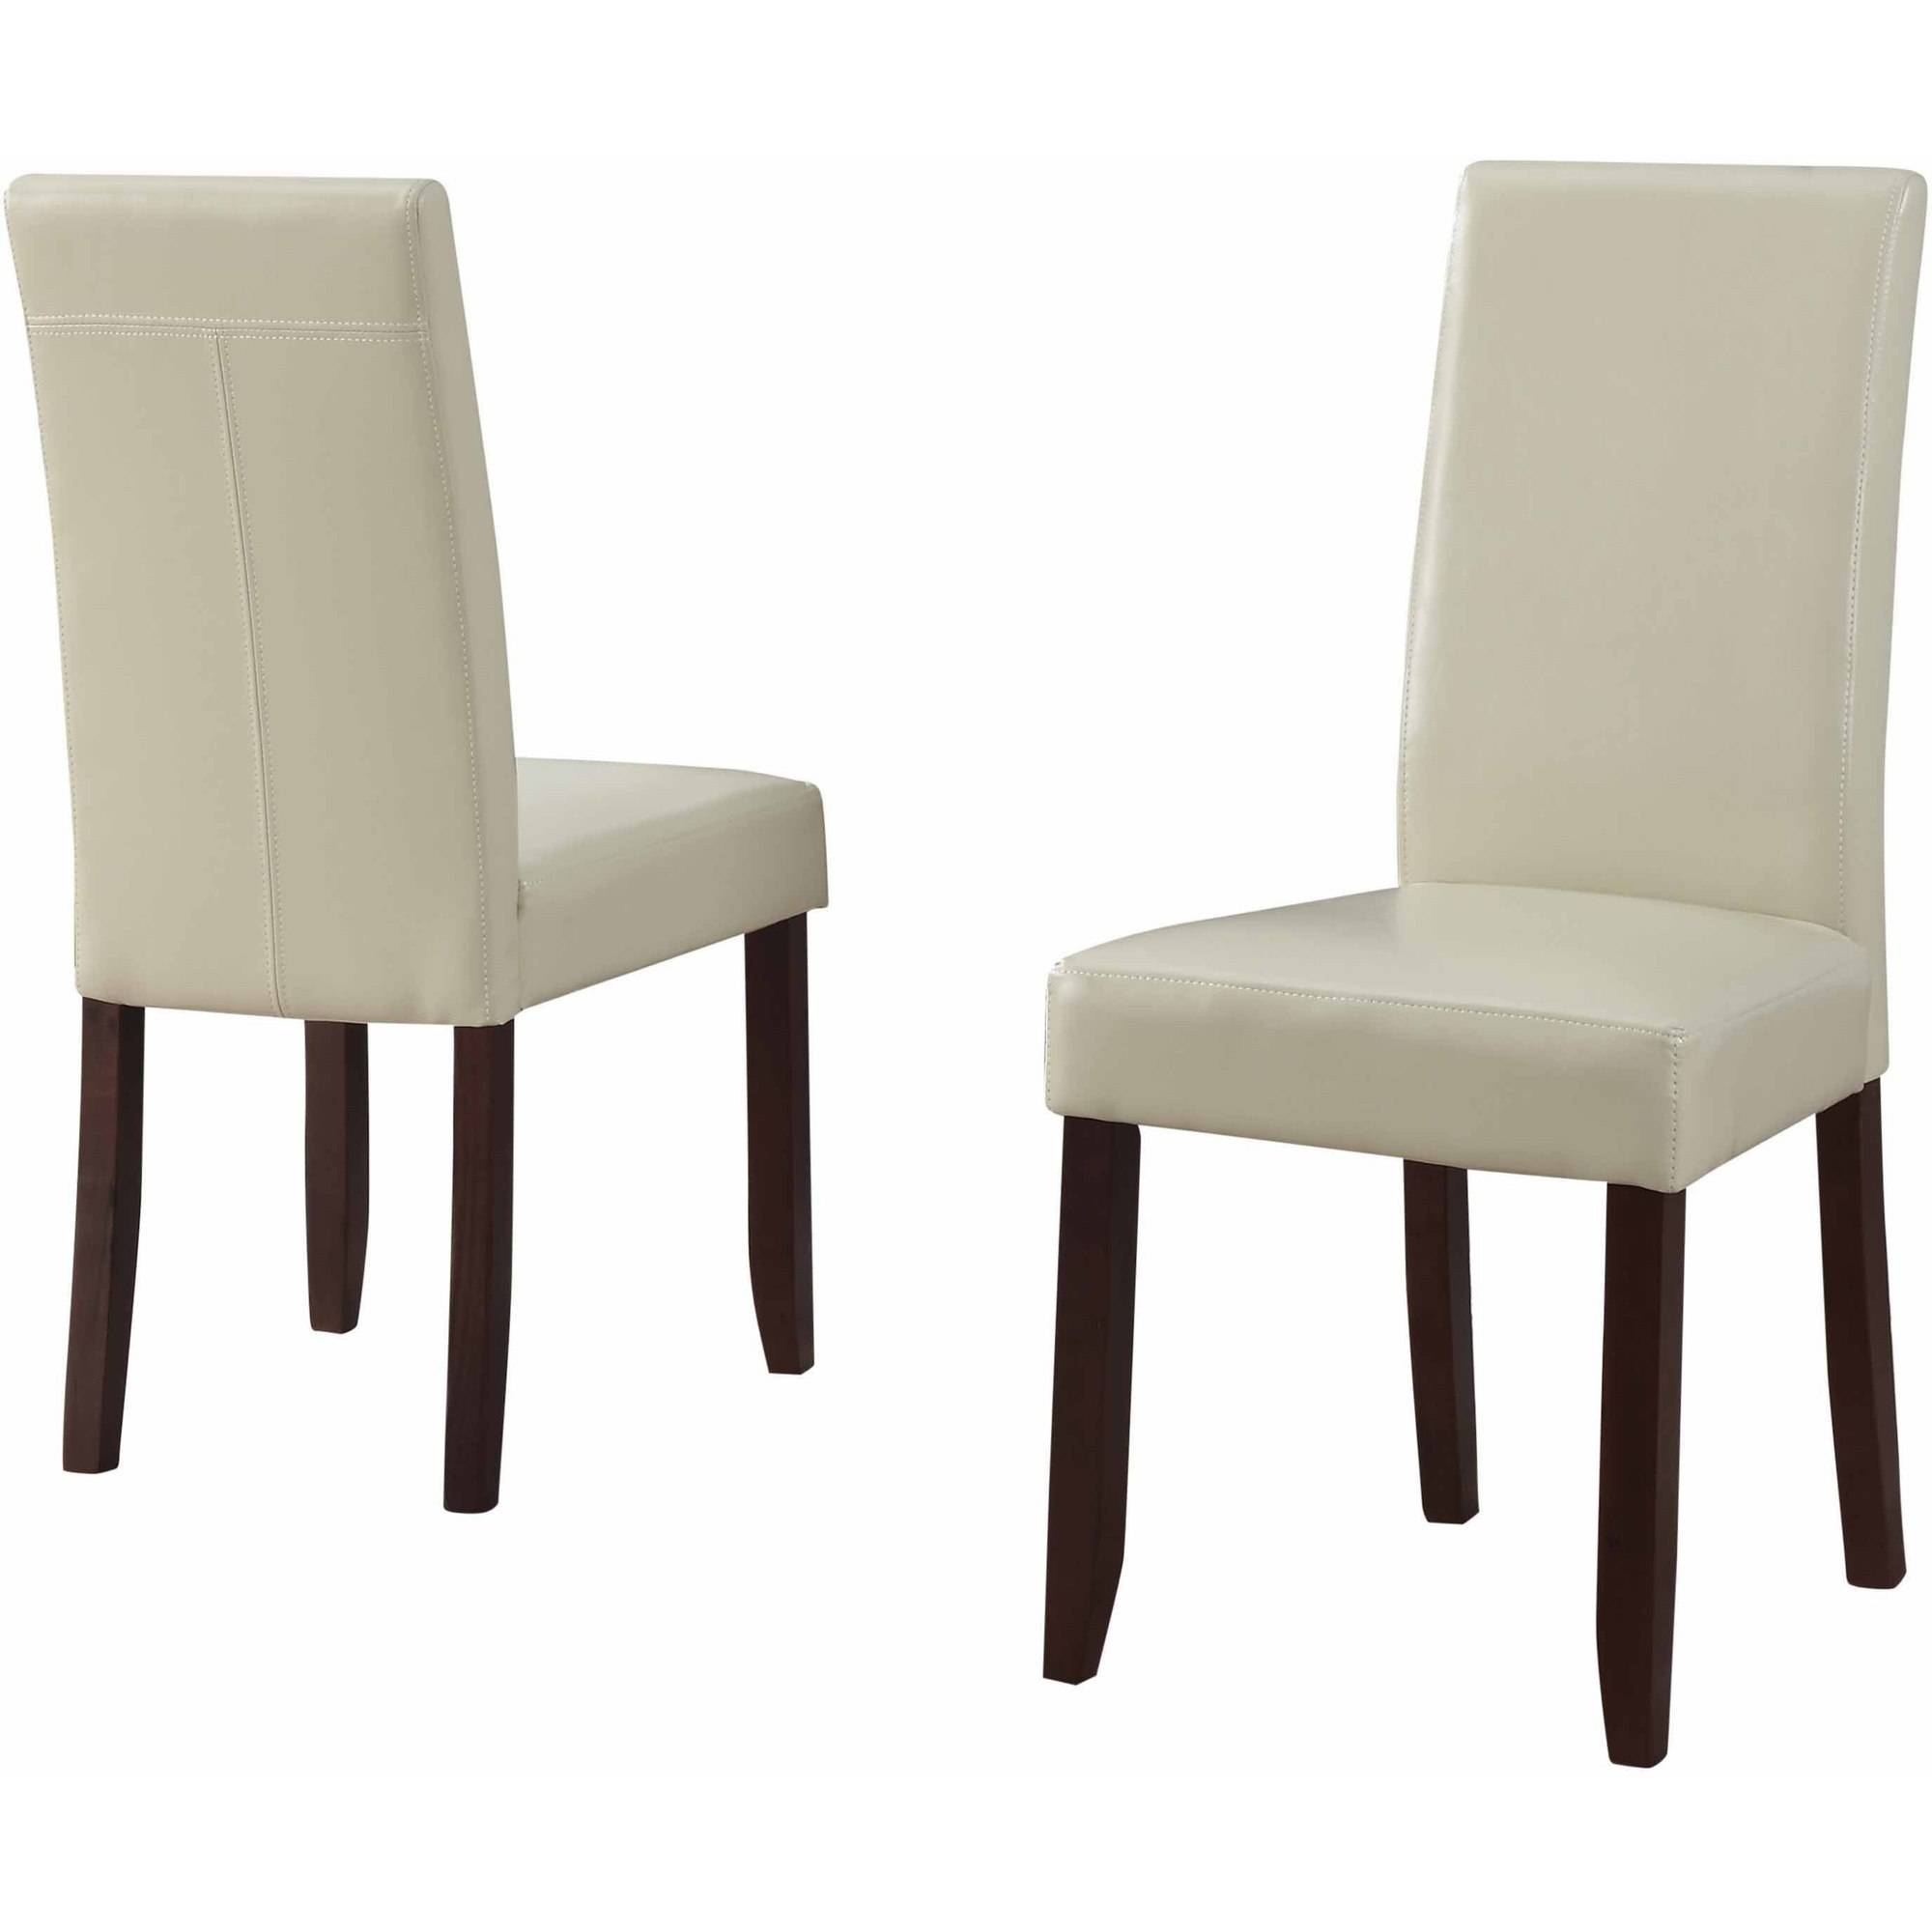 Dining Stools Dining Chairs Walmart